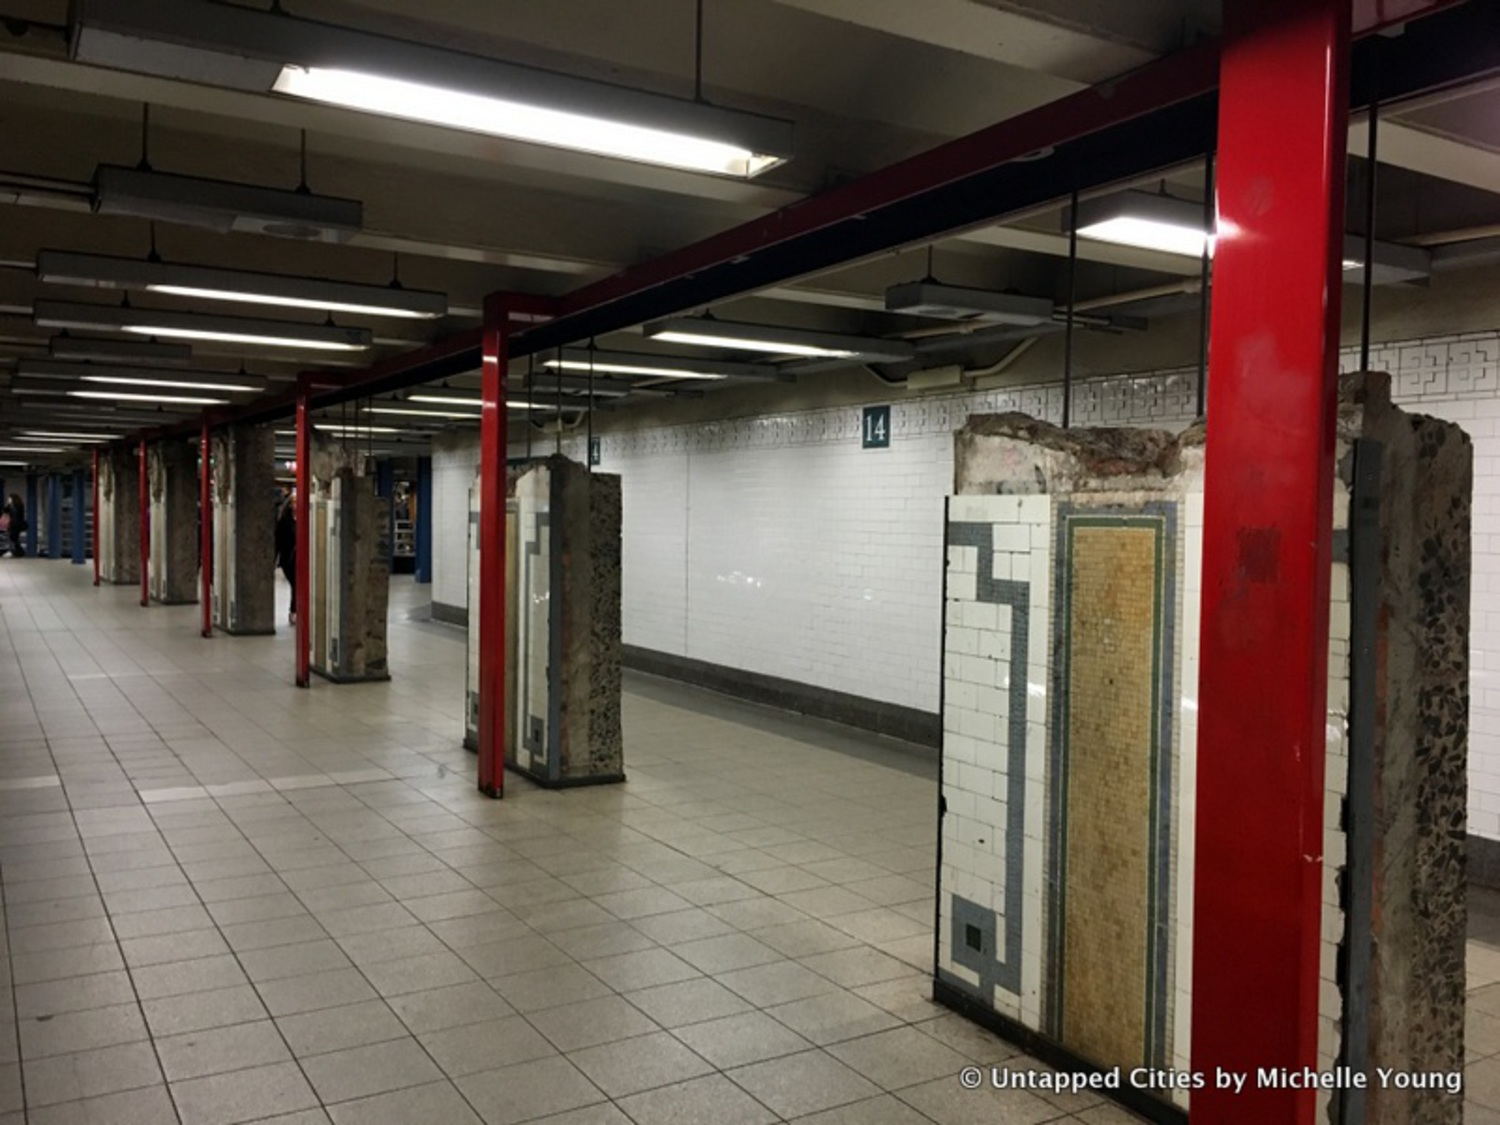 The pieces showcased come from a renovation of the Union Square station and range from large standalone wall pieces to infrastructural portions of the station – pipes, signage, and the like.